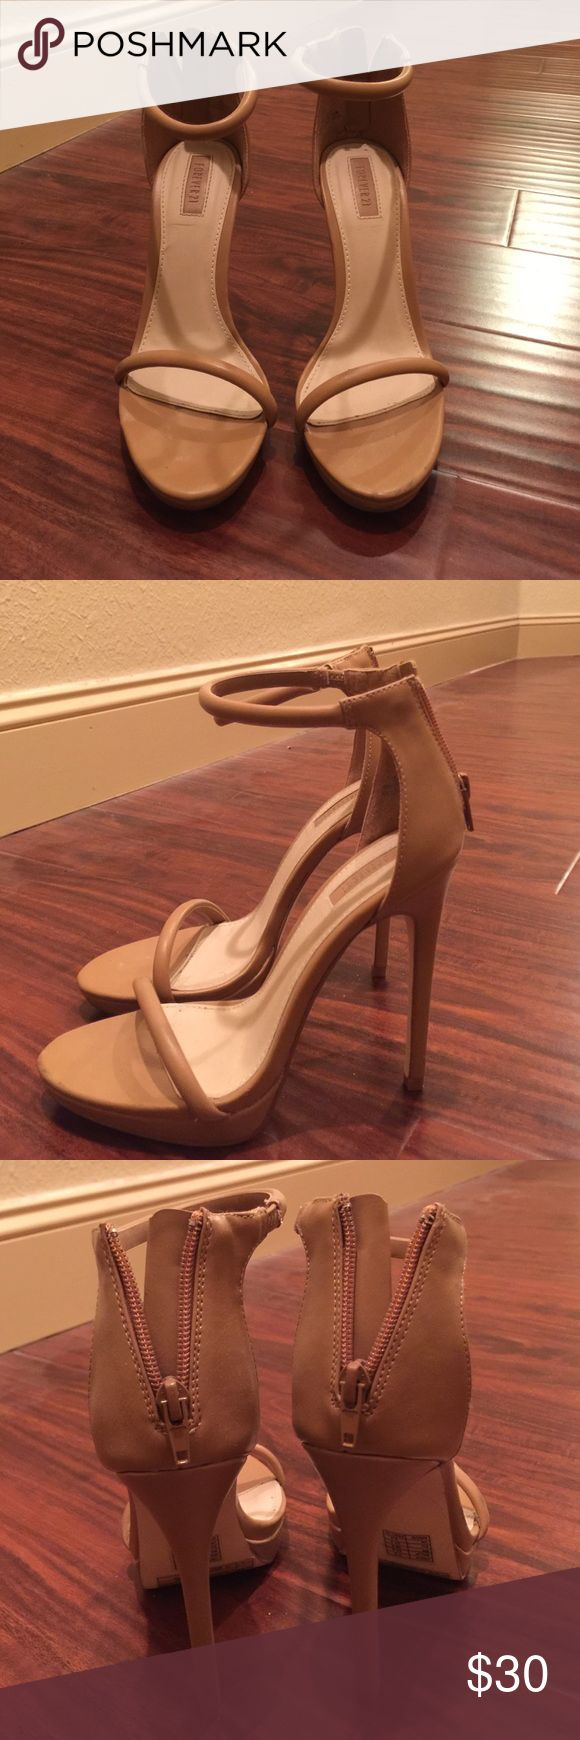 Camel colored strappy heels Worn once or twice still looks brand new!! Super sexy heeels Forever 21 Shoes Heels